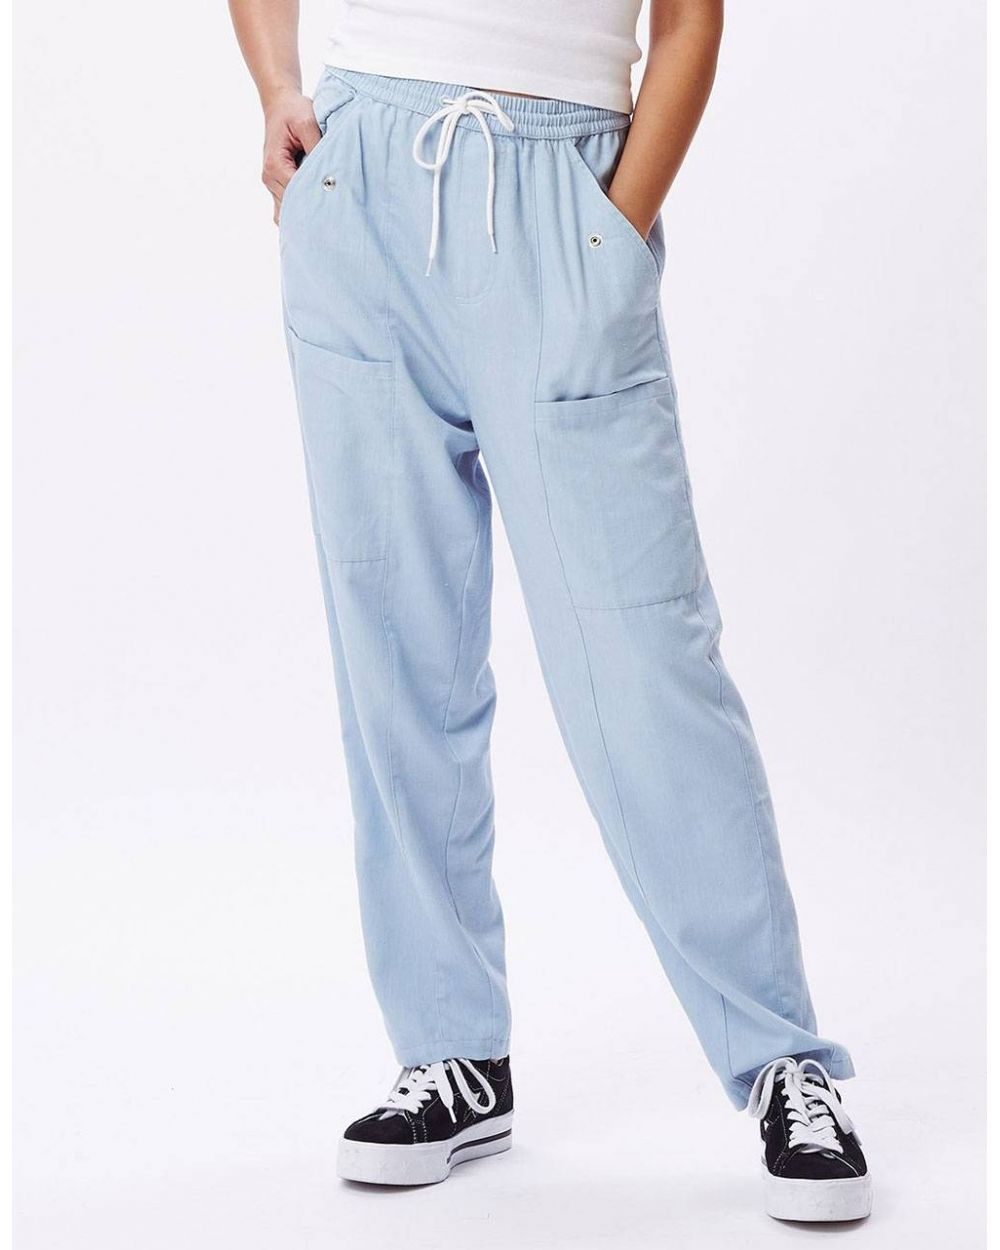 Obey Woman provence pants - faded blue obey Pants 109,00€